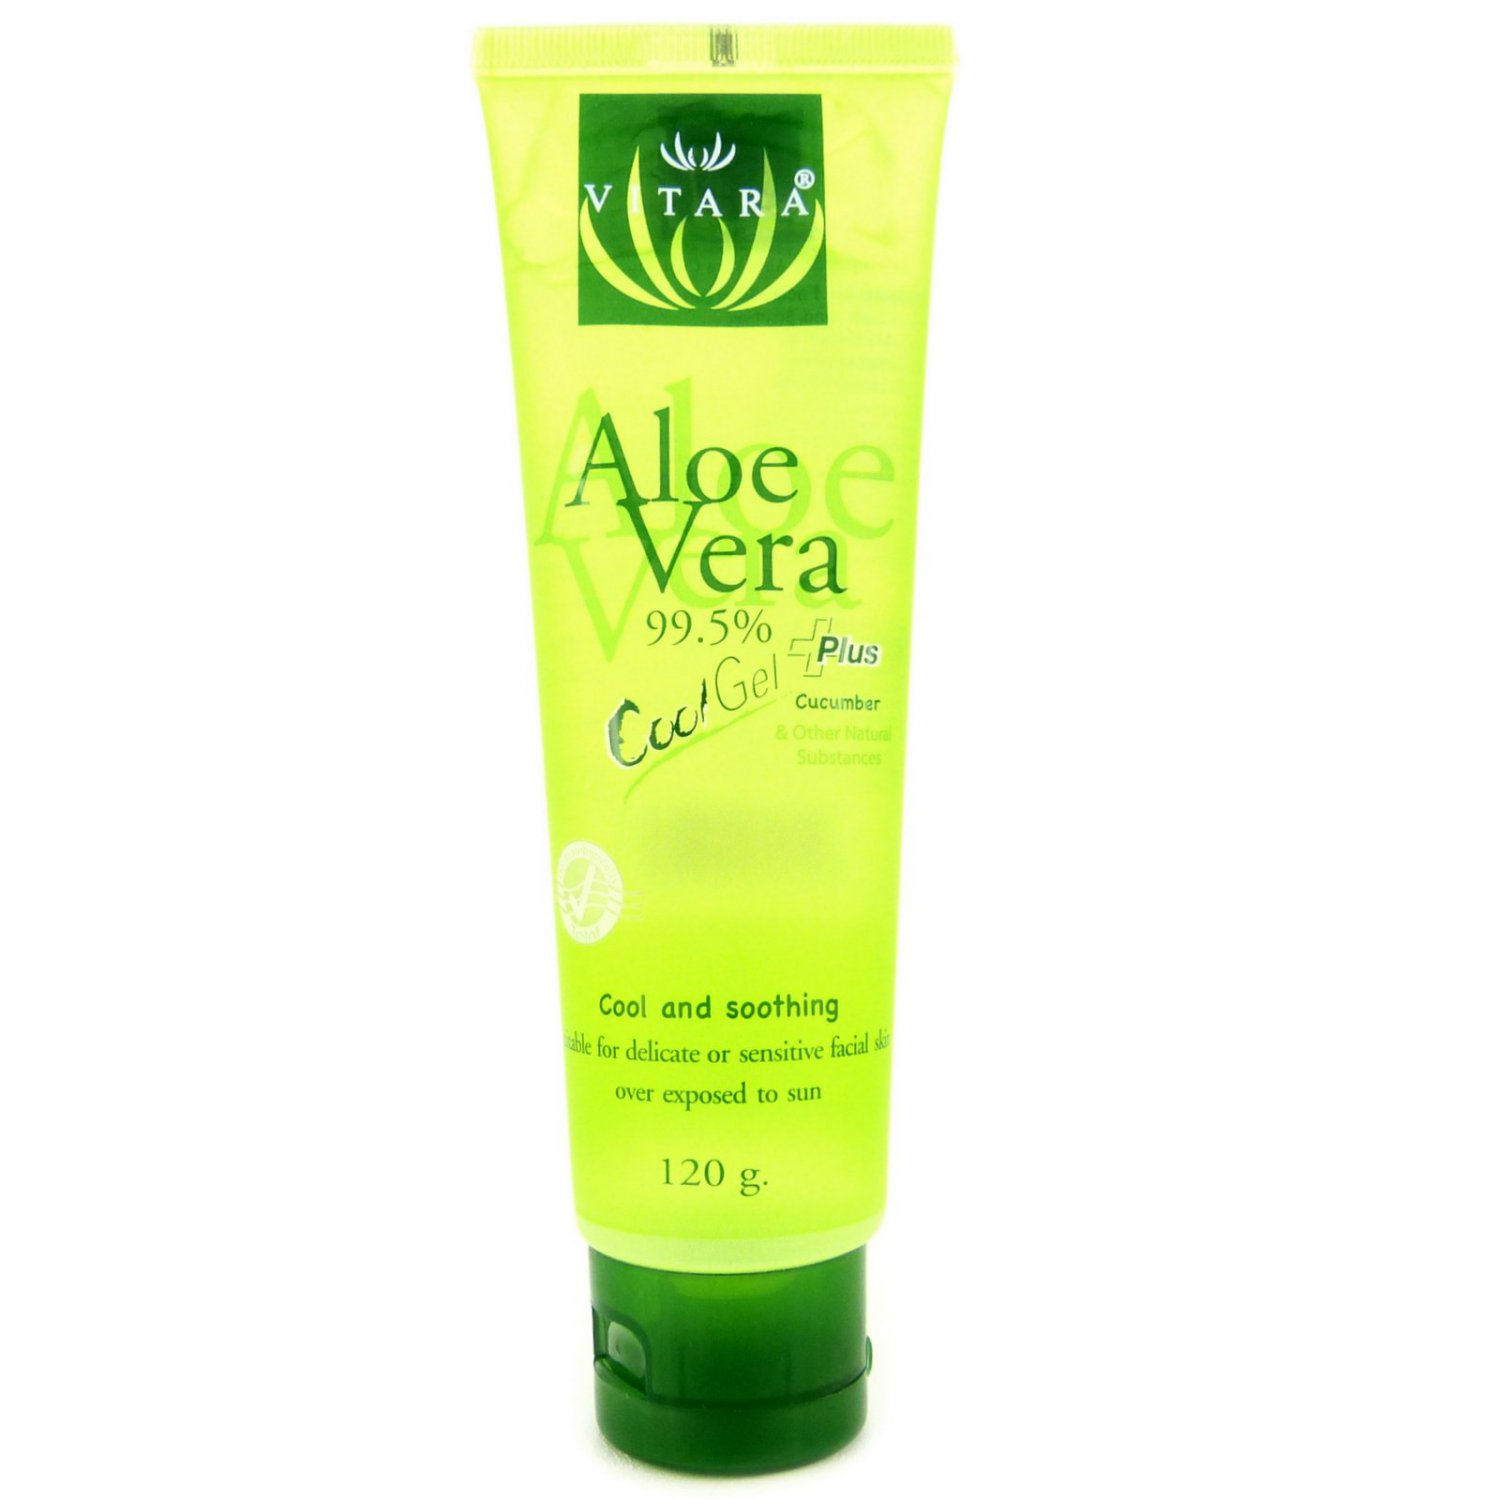 Vitara Aloe Vera Cool Plus Gel for Facial Sunburn 120g